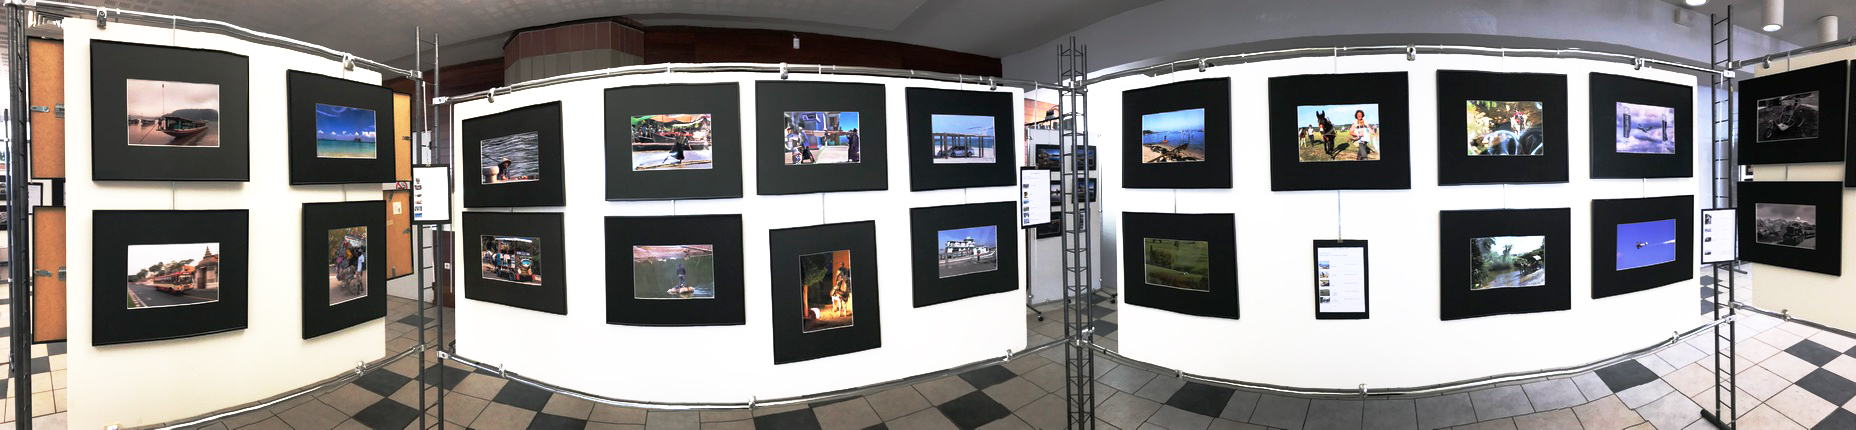 expo-panoramique